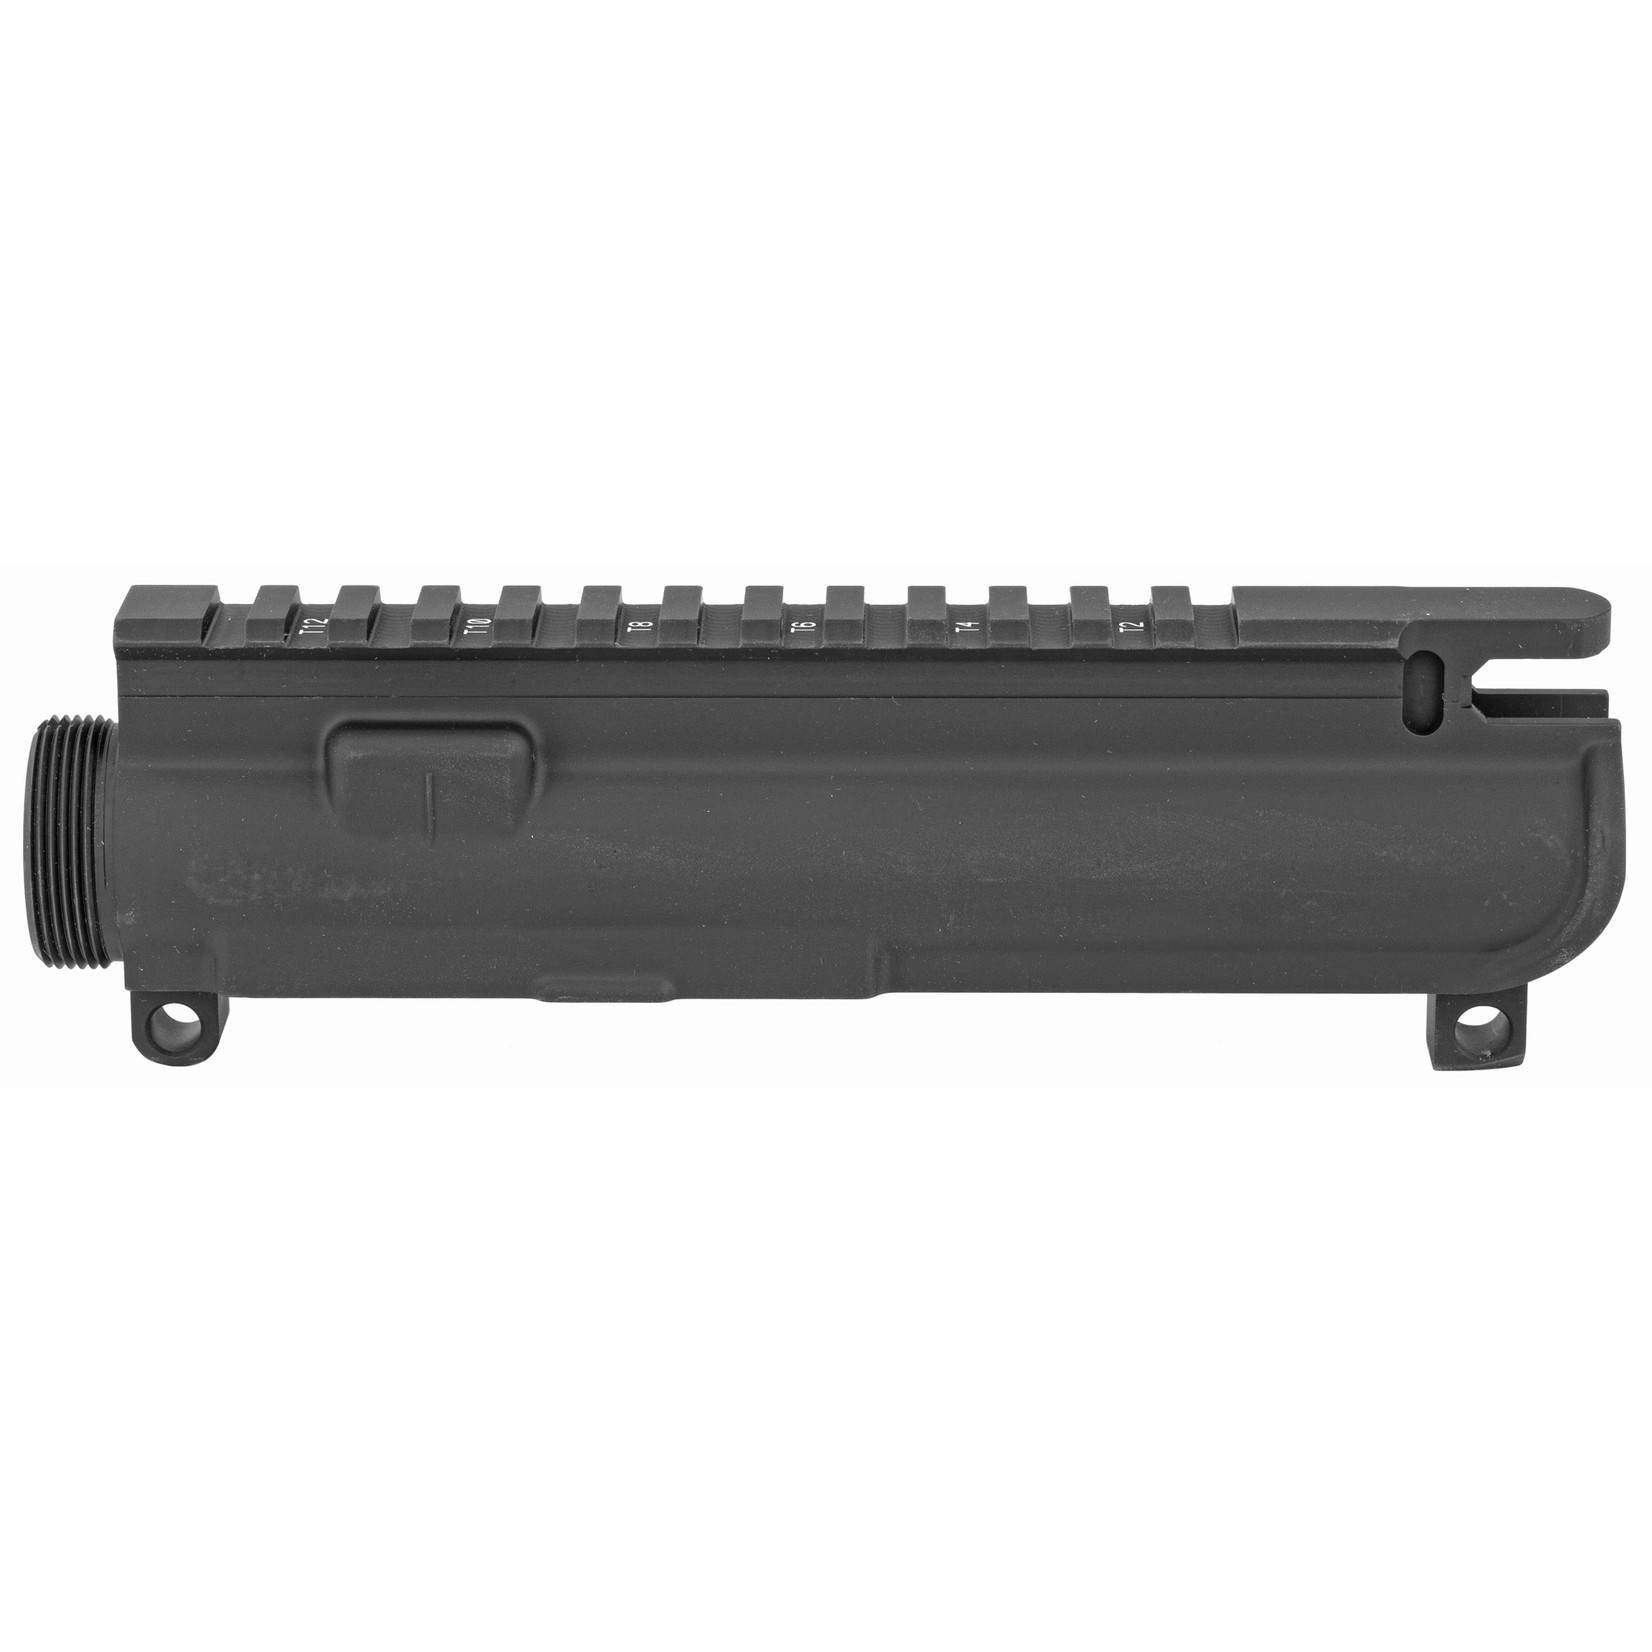 LBE Unlimited LBE AR15 M4 STRIPPED UPPER RECEIVER